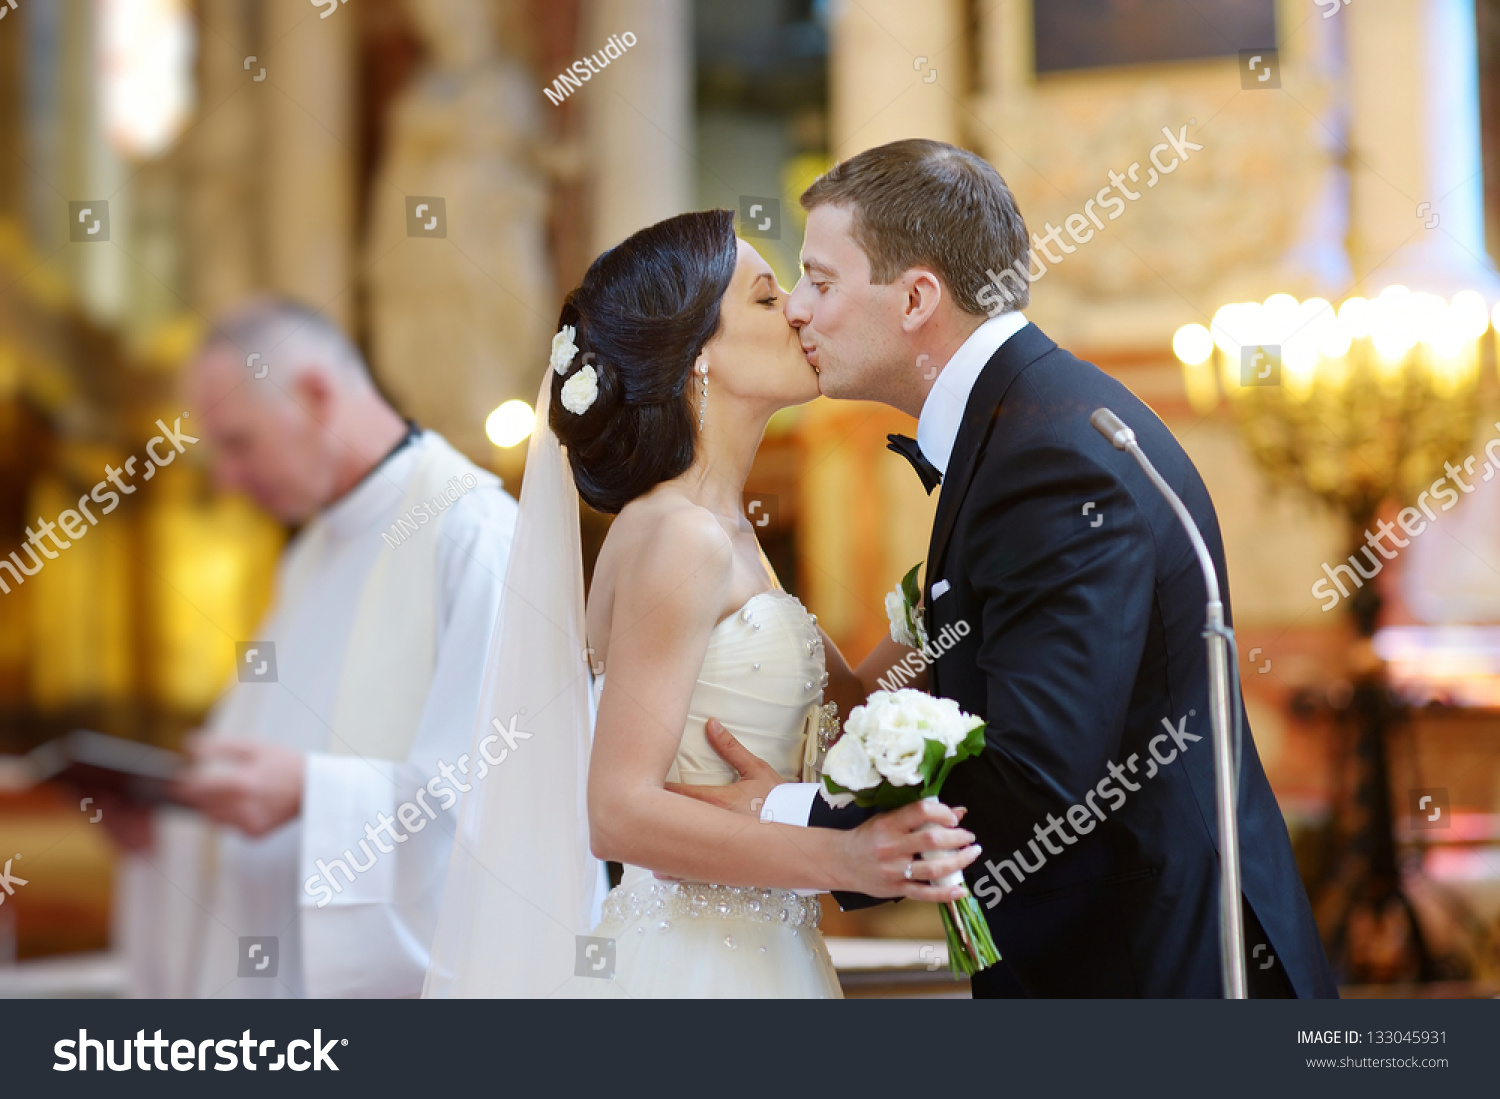 Bride Groom Kissing Church After Wedding Stock Photo 133045931